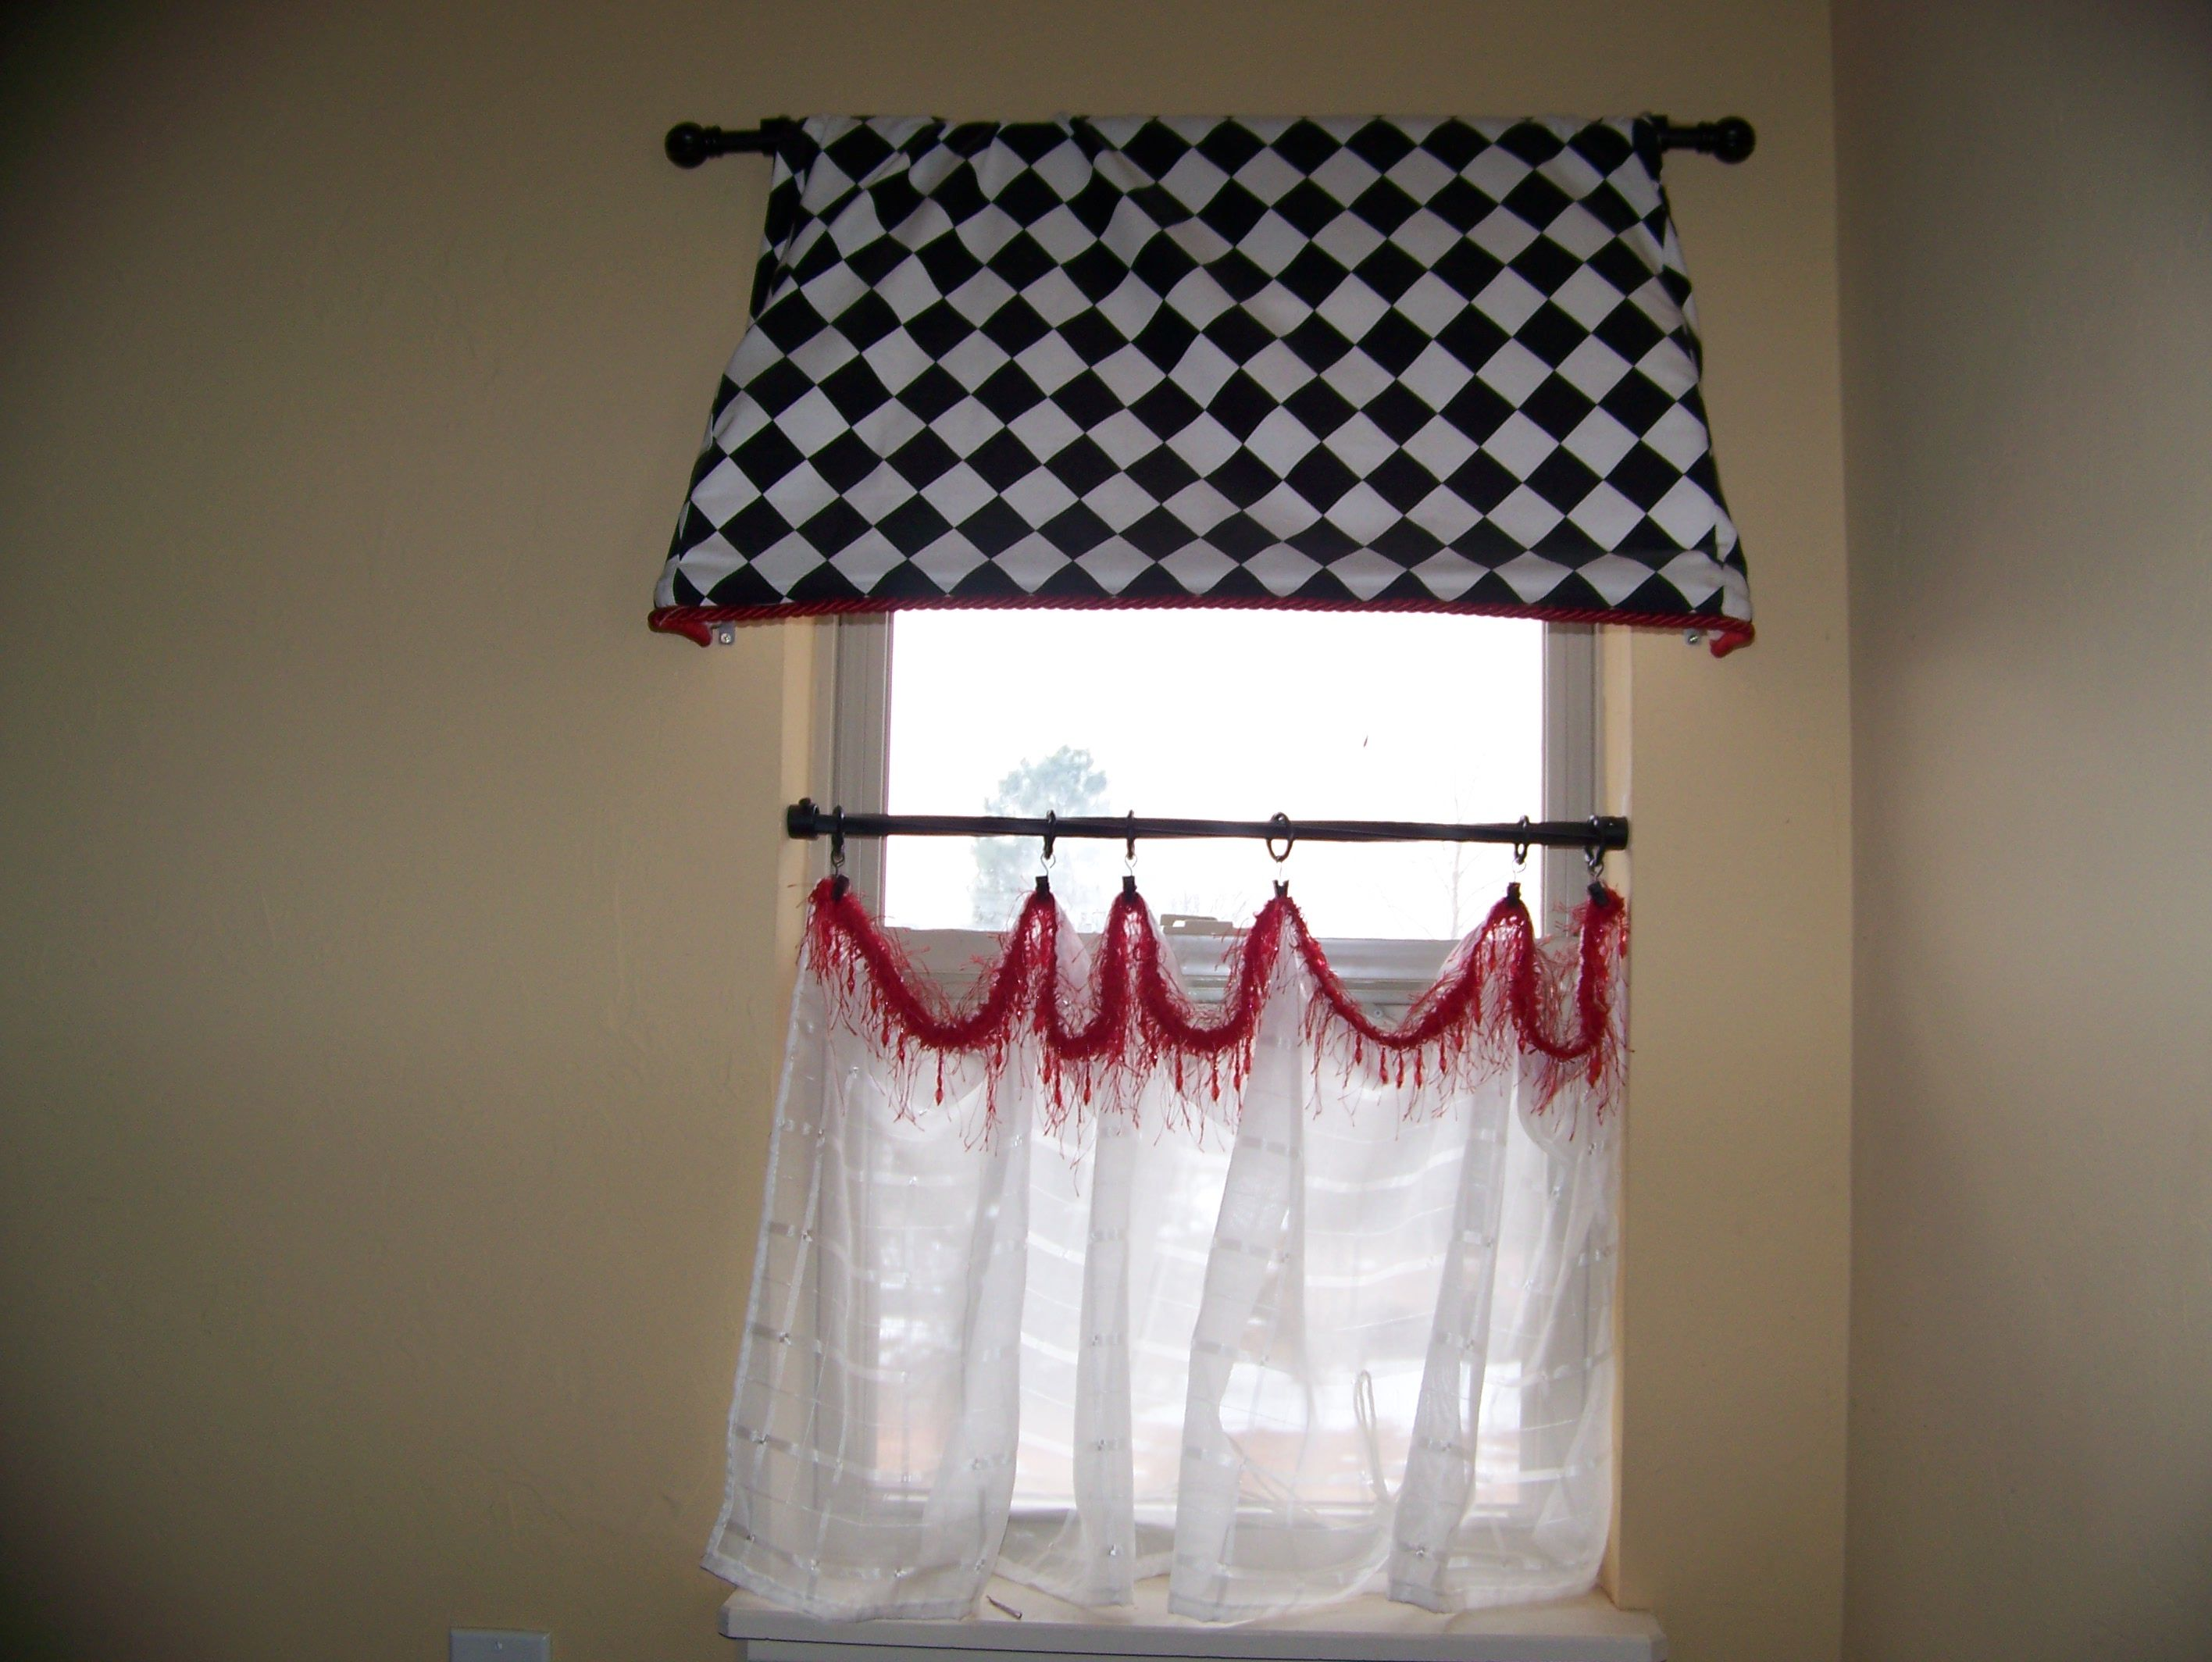 Laundry Room Curtains - Laundry rooms